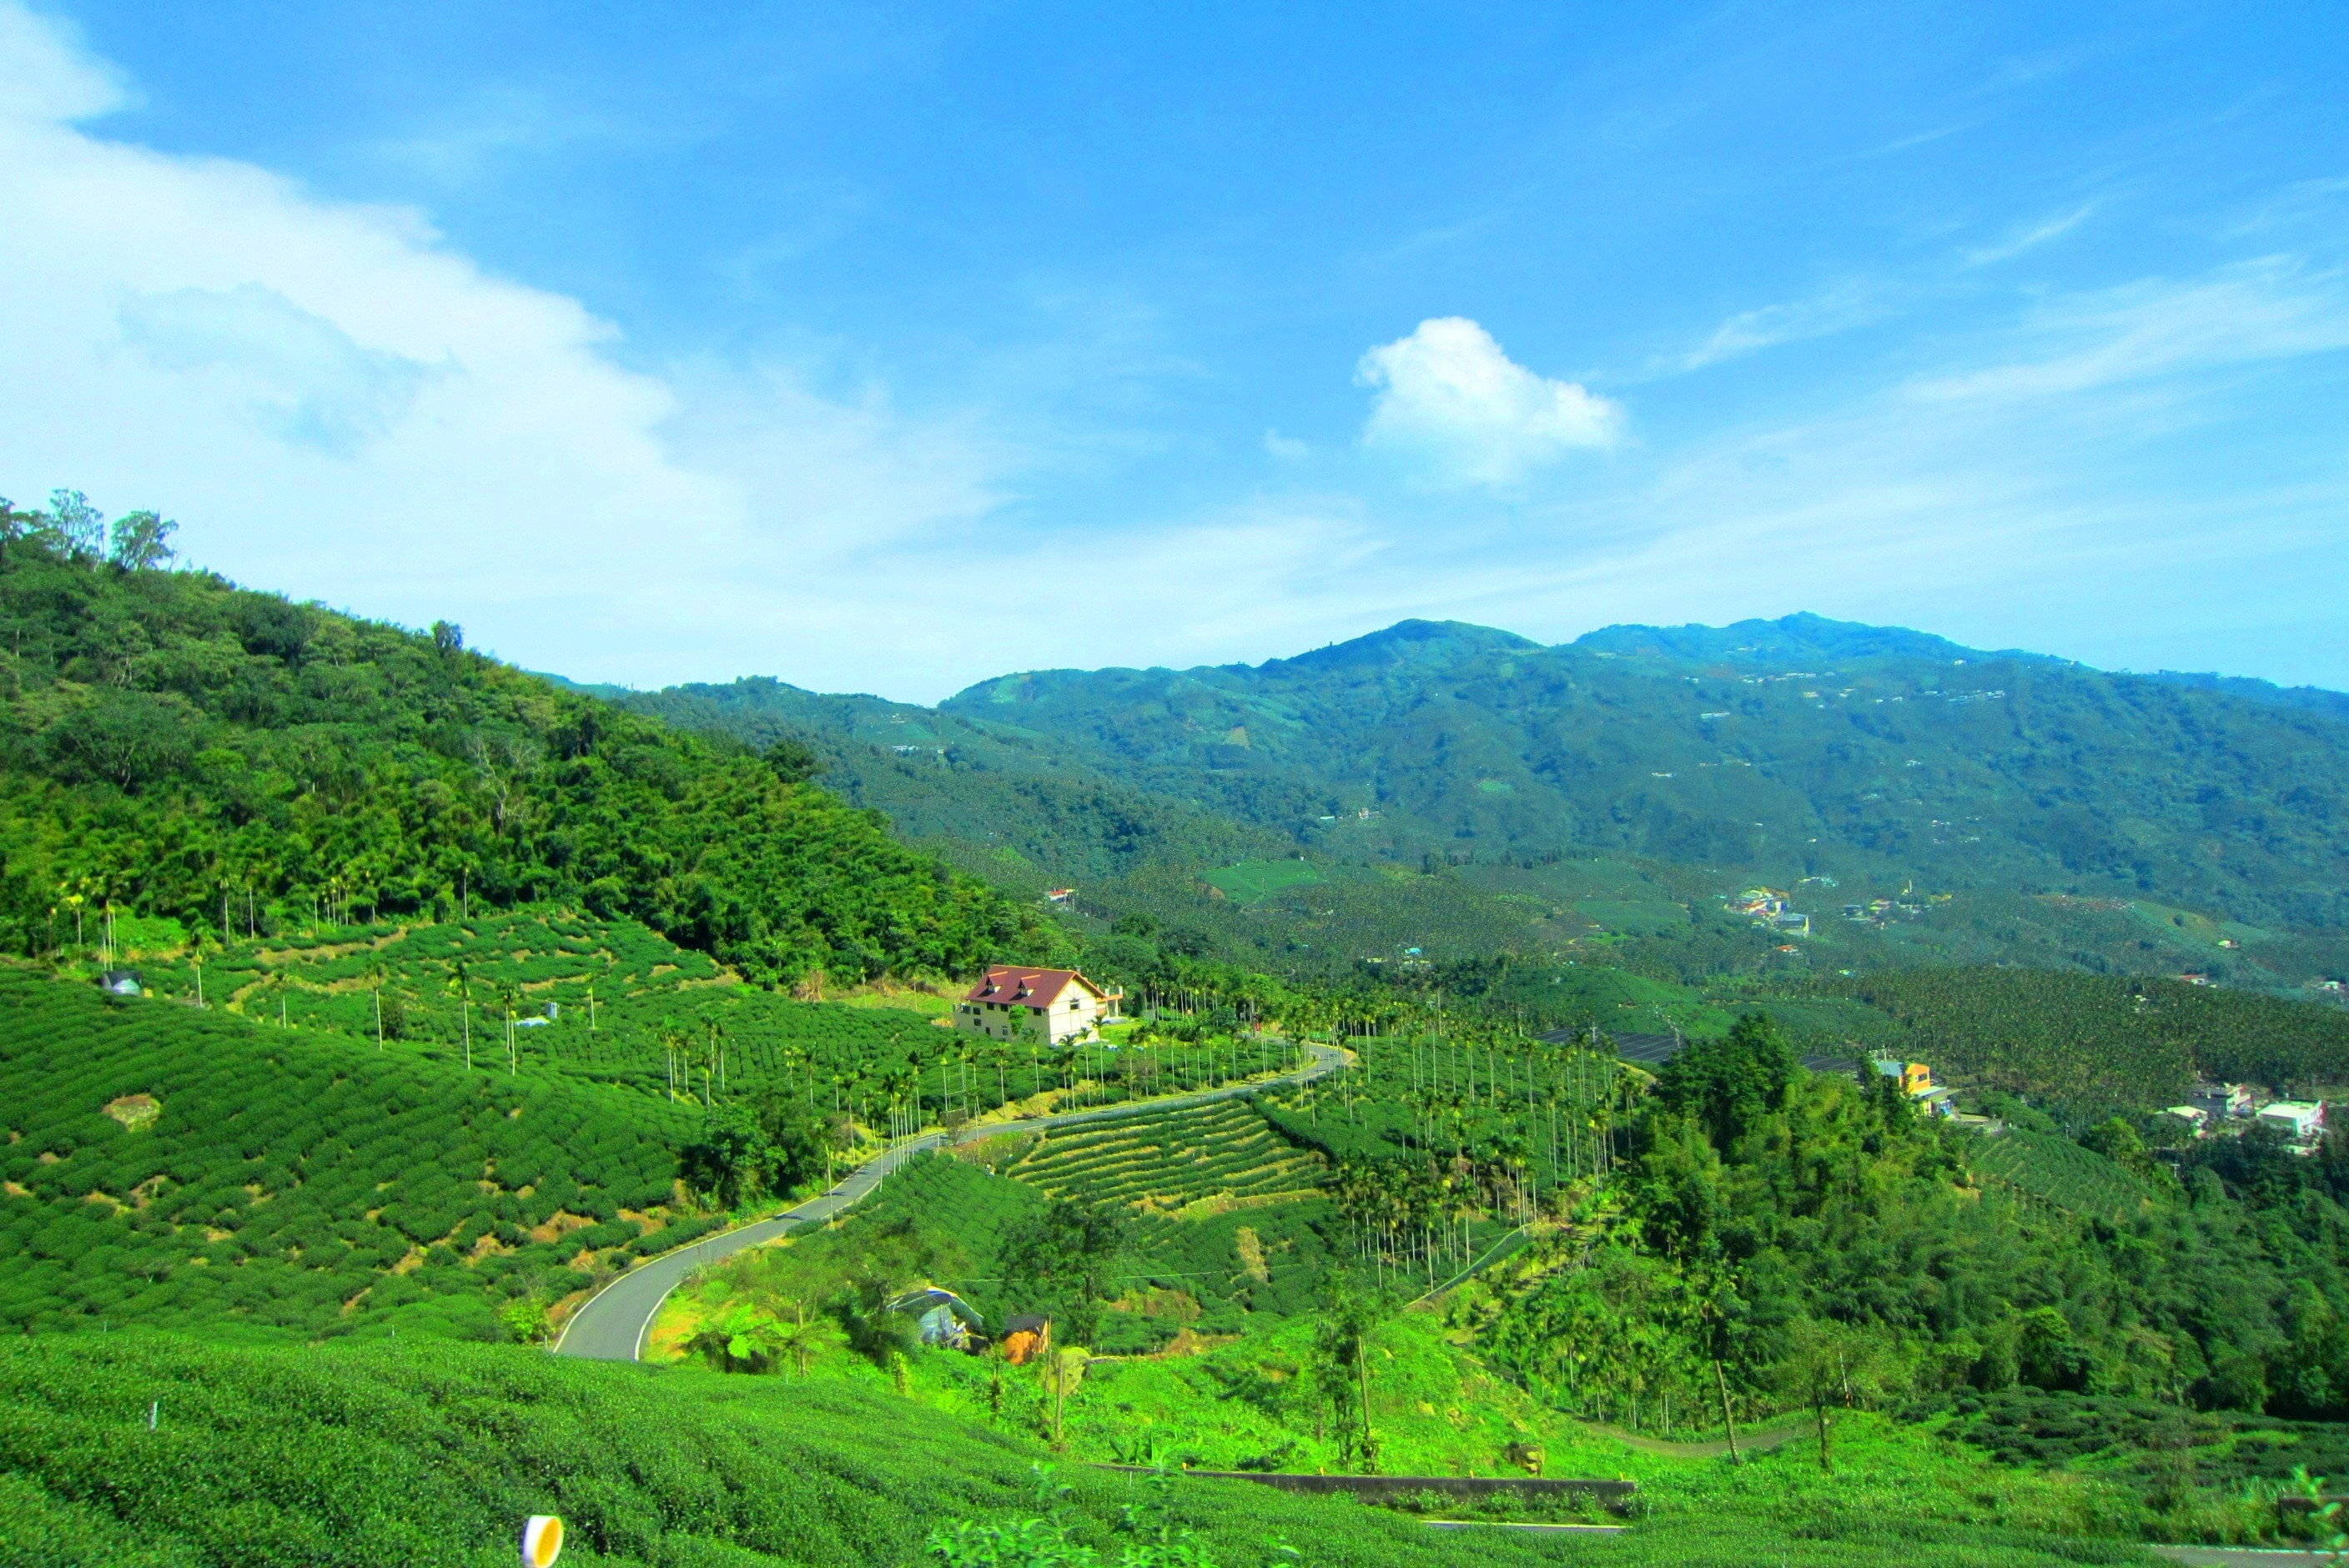 Lush green mountains photo